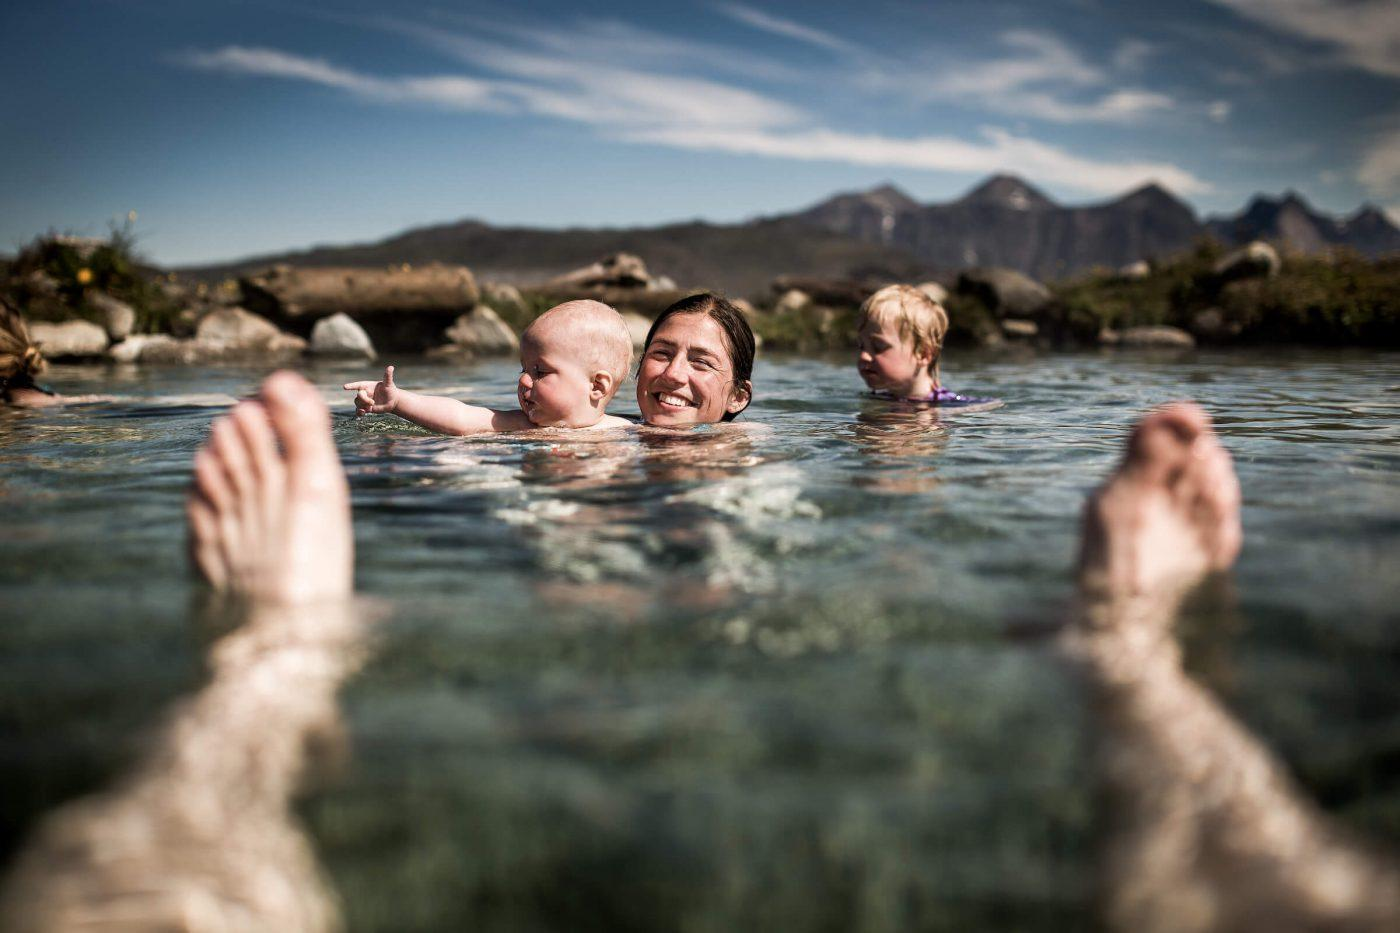 Relaxing at the hot pools of Uunartoq in South Greenland. By Mads Pihl